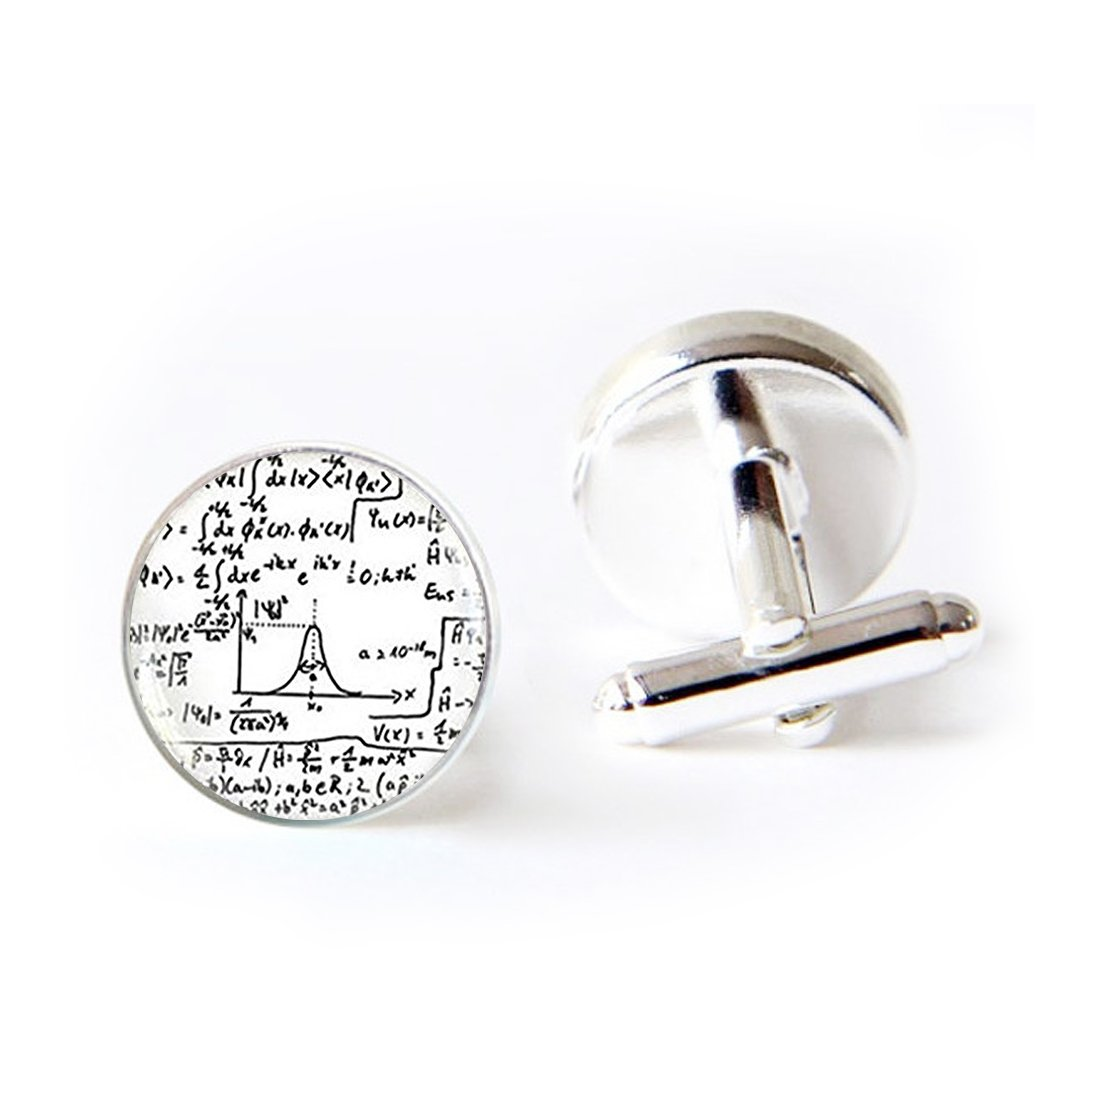 Unique Round Cufflinks Set Quantum Physics Mathematical Formulas Glass Cuff Dress Shirt Links Wedding Business Anniversary Gift for Him LAROK WAZZIT KF-LSZBS-0944